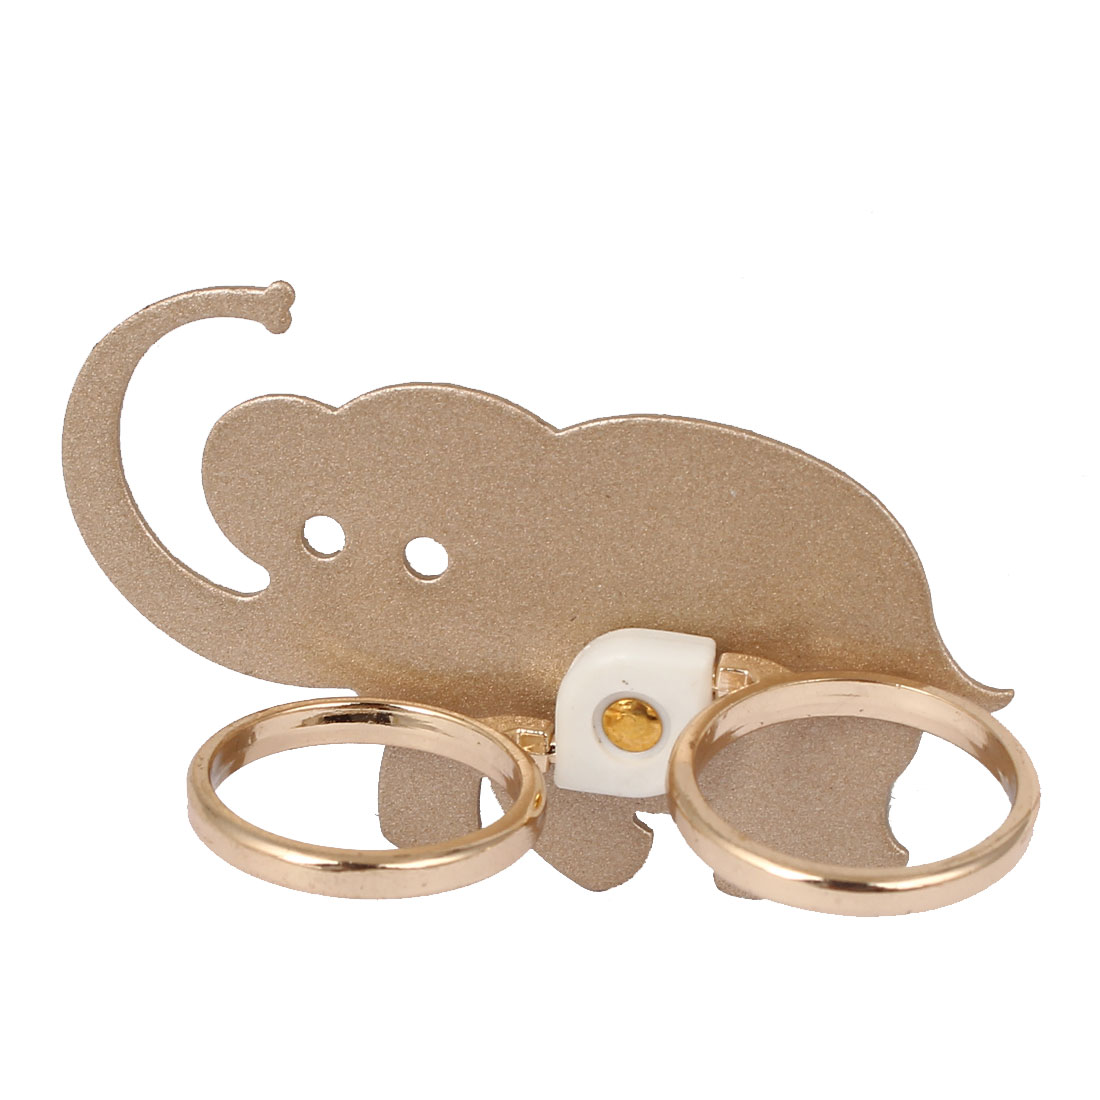 Mobile Phone Cellphone Elephant Pattern Adhesive Finger Ring Grip Stand Mount Champagne Color